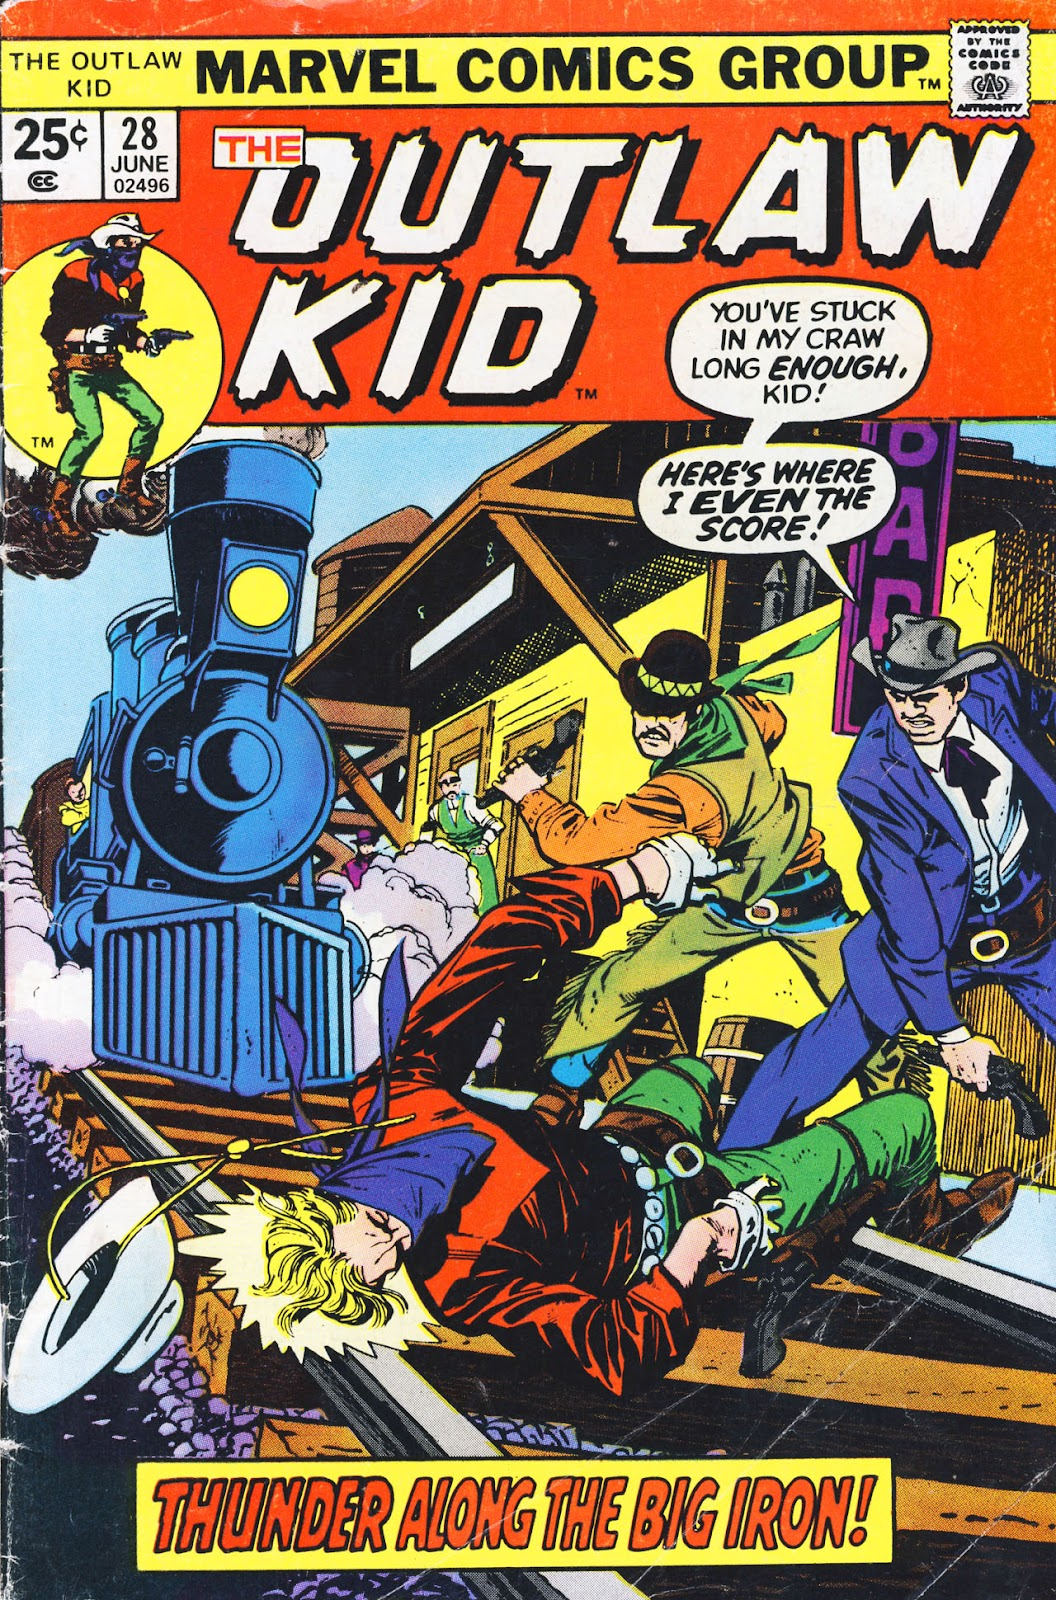 The Outlaw Kid (1970) issue 28 - Page 1